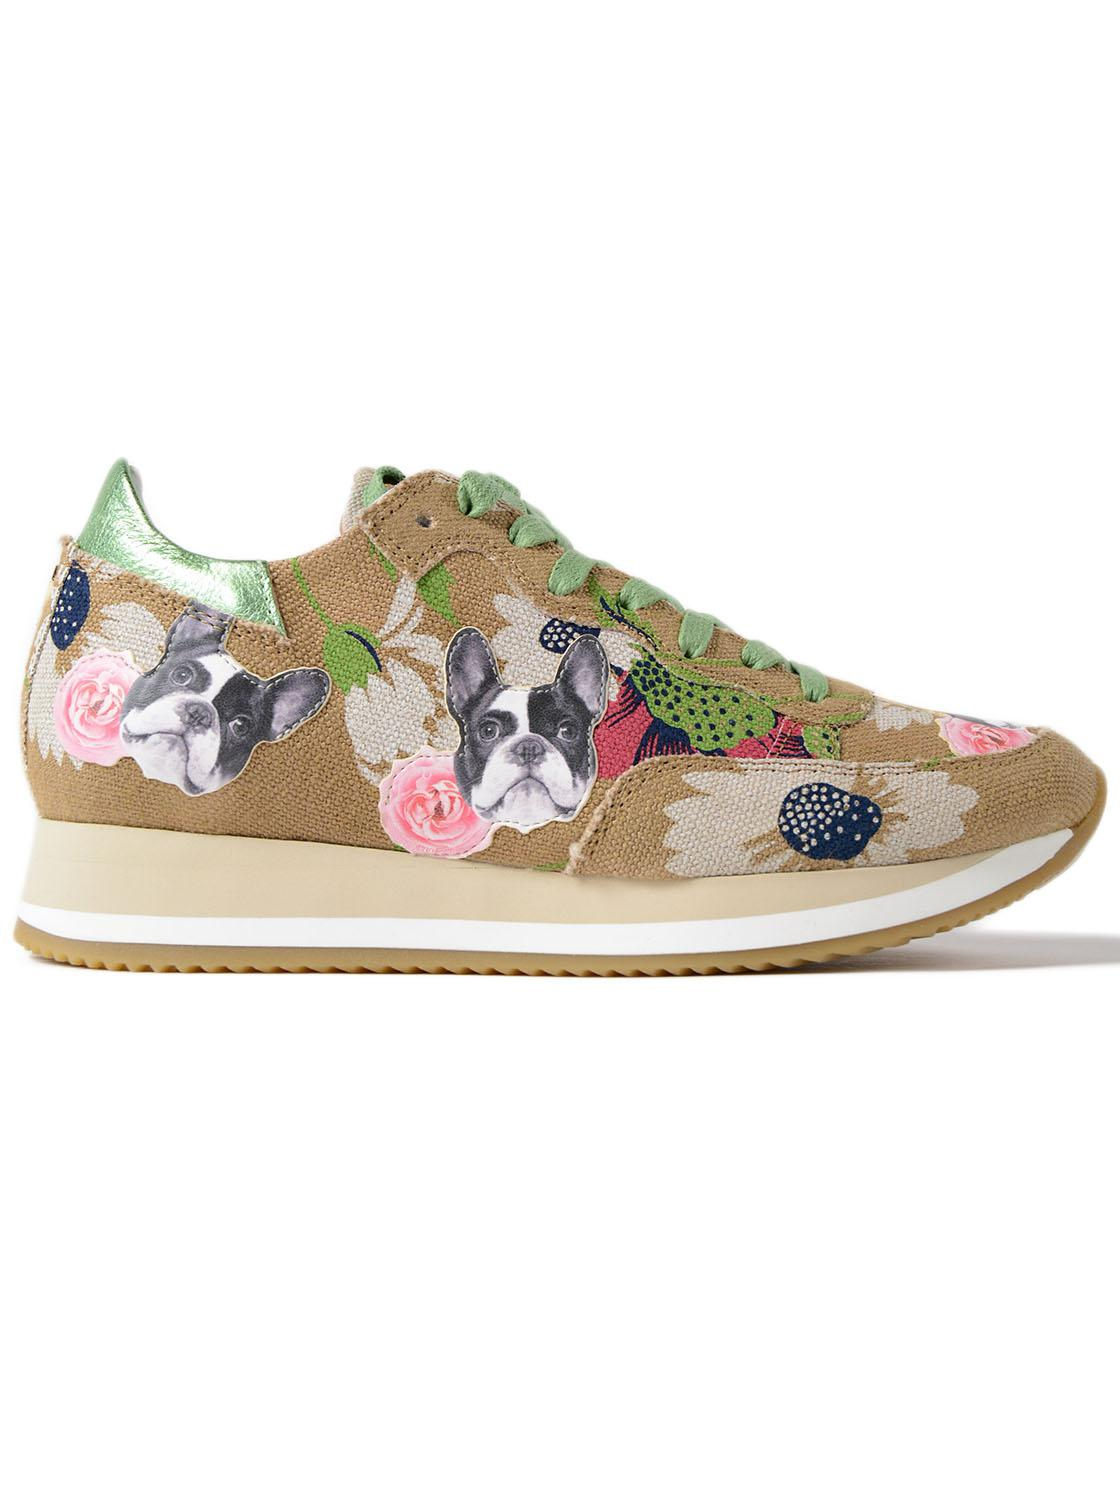 visit new for sale clearance explore Philippe Model Etoile Bulldog sneakers 9wh0Tae1r